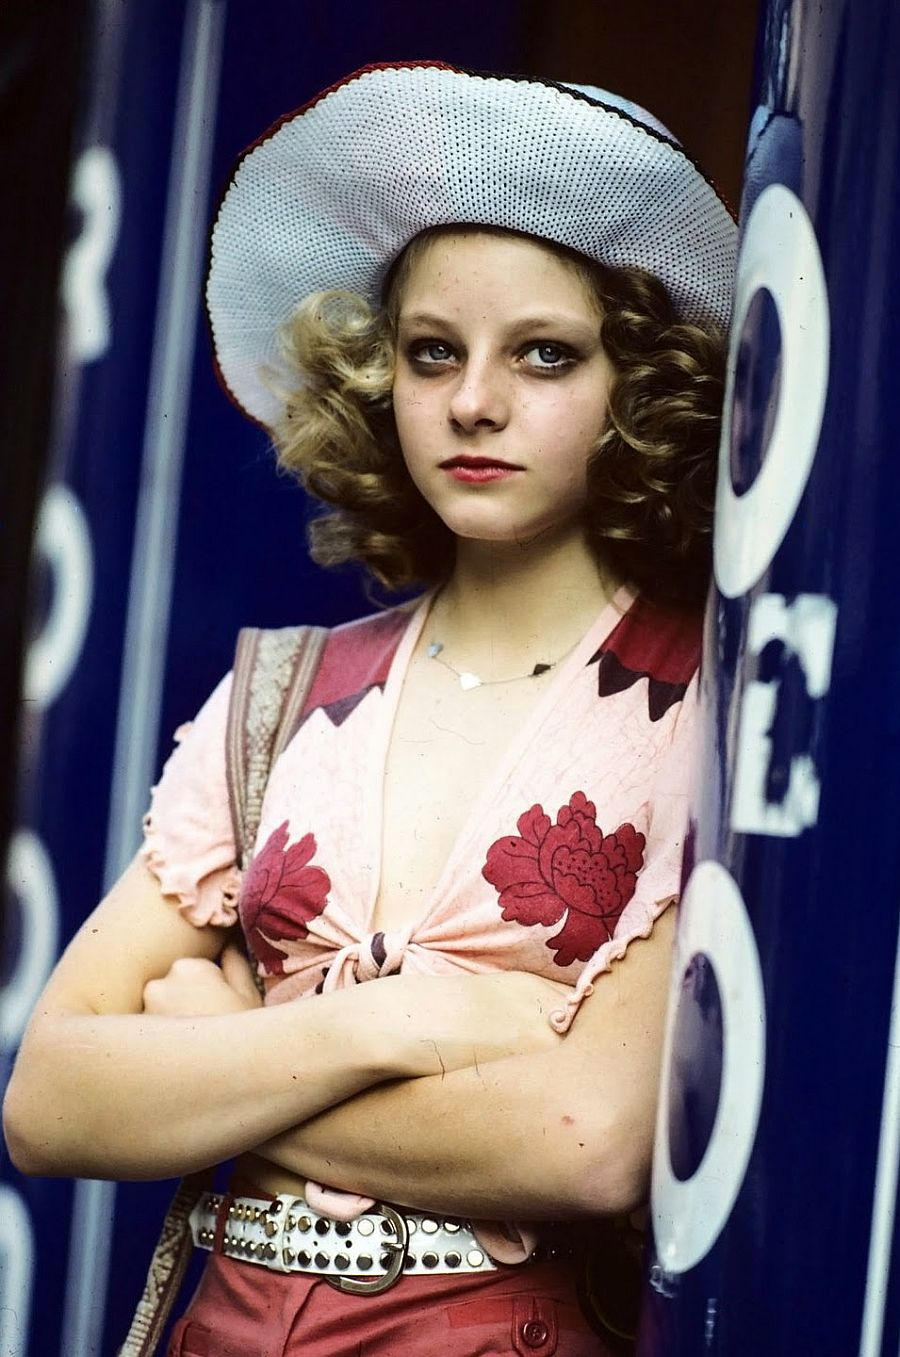 behind-the-scenes-jodie-foster-on-the-set-of-taxi-driver-1976-11